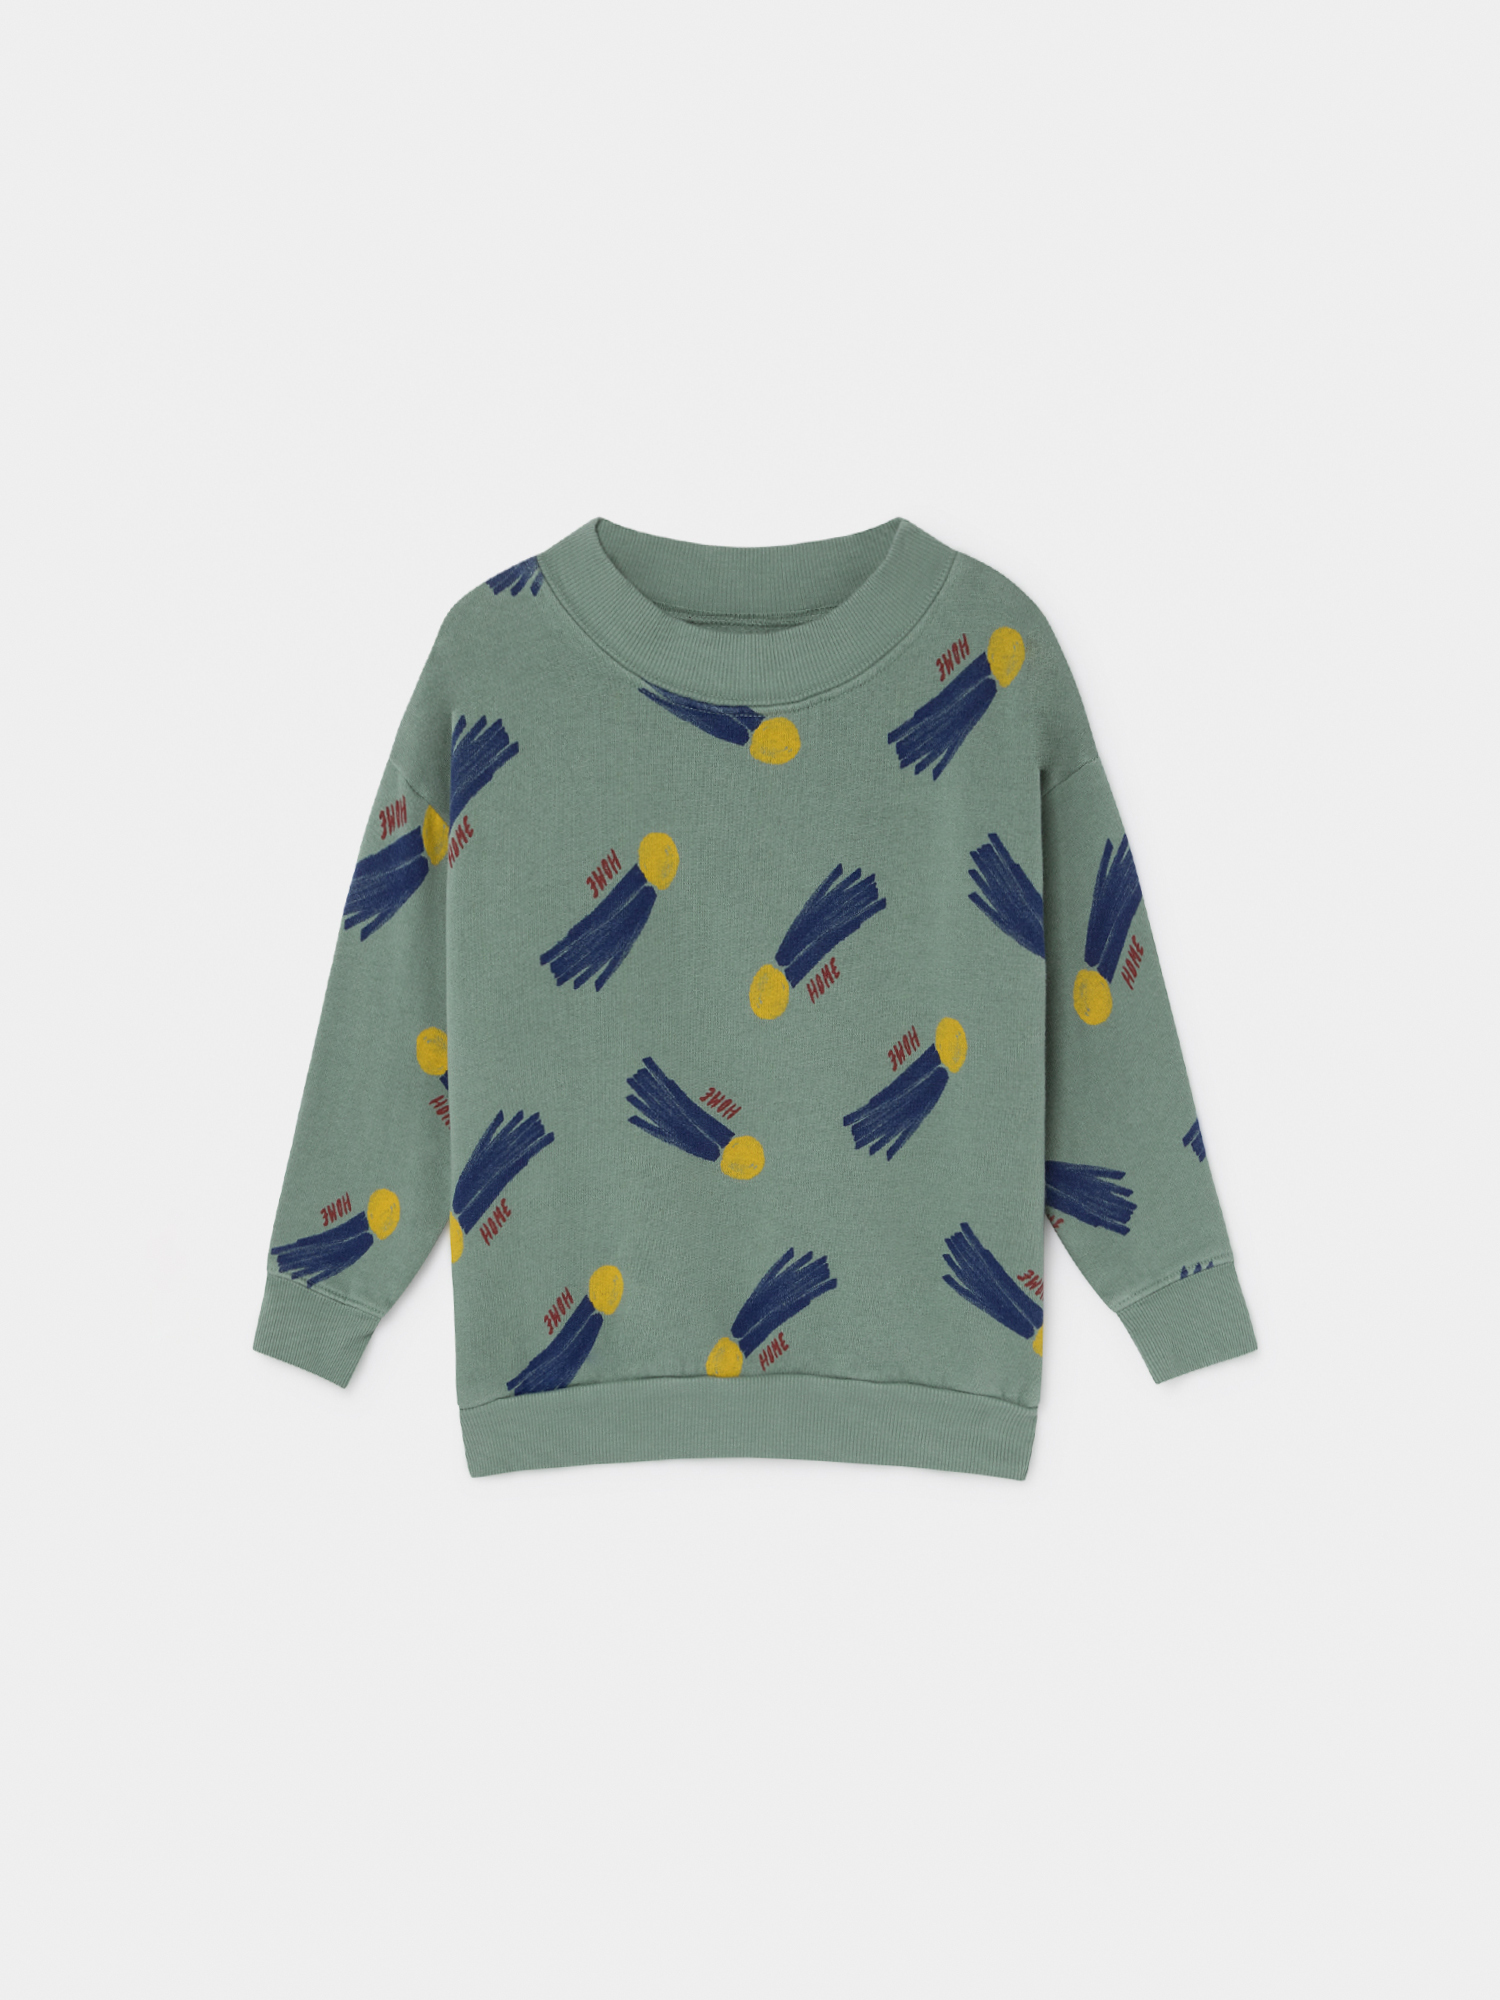 《BOBO CHOSES 2019AW》All Over A Star Called Home sweatshirt / 2-9Y